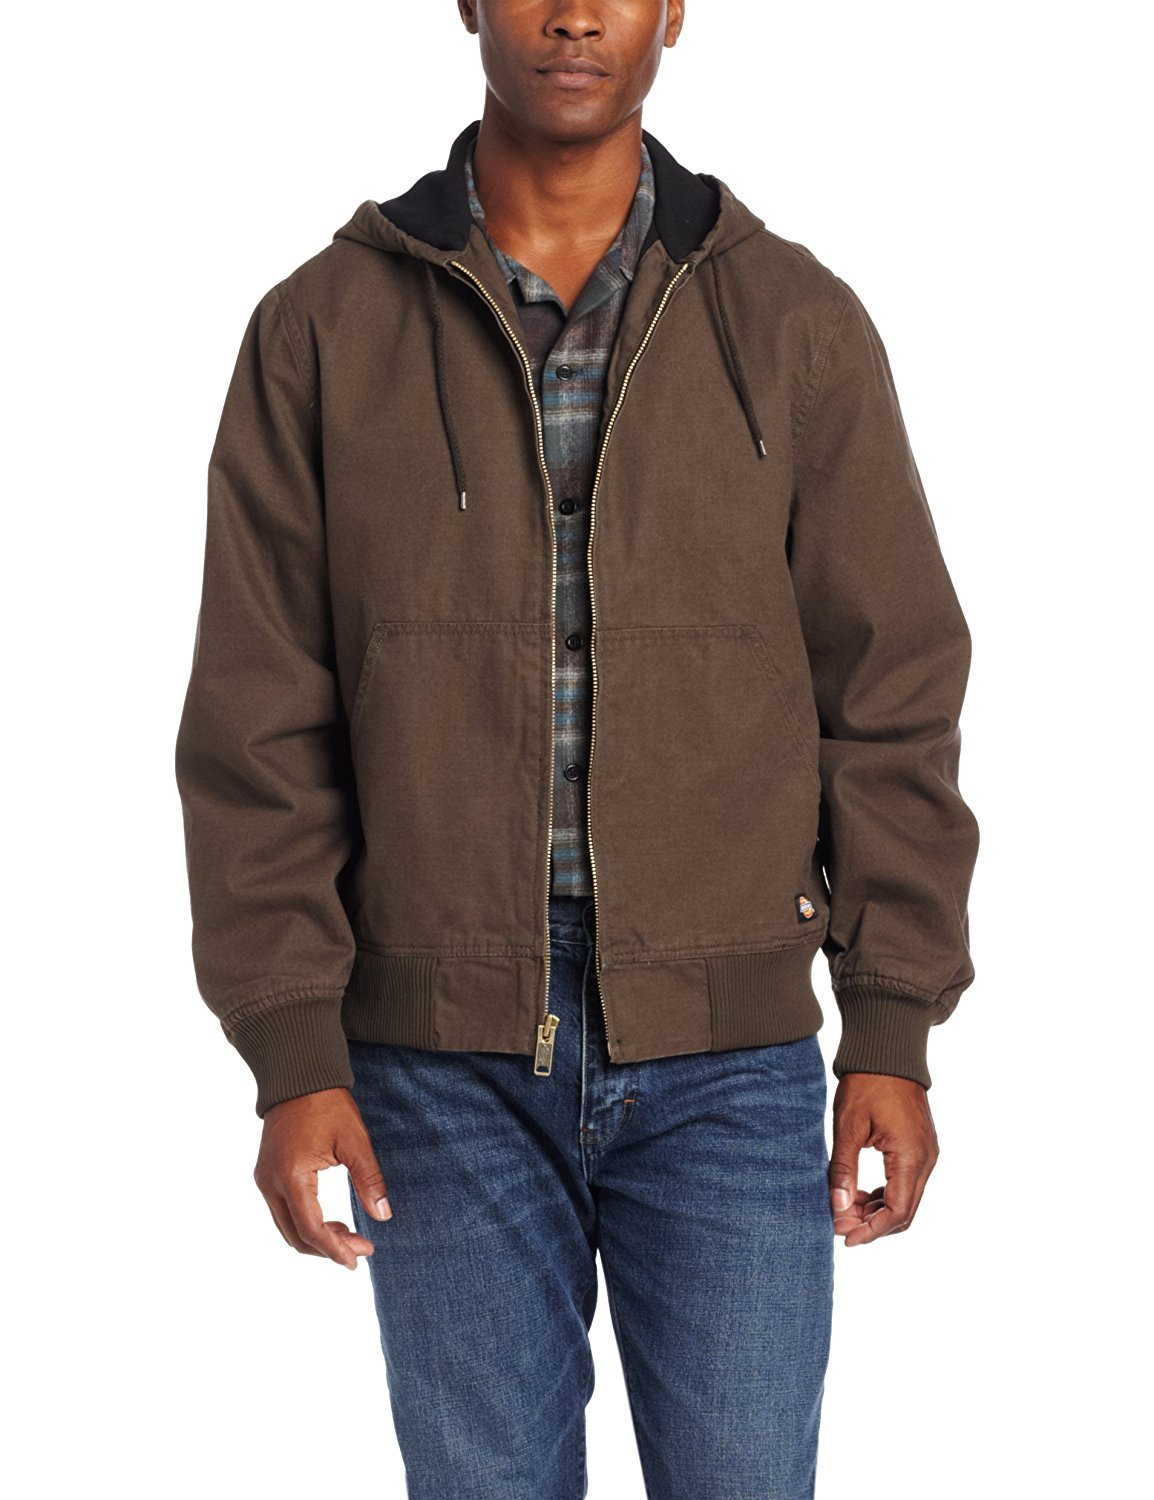 Dickies Men's Light Weight Sanded Duck Thermal Lined Hooded Jacket Black Olive X-Large/Regular [並行輸入品] B077QG2SFL